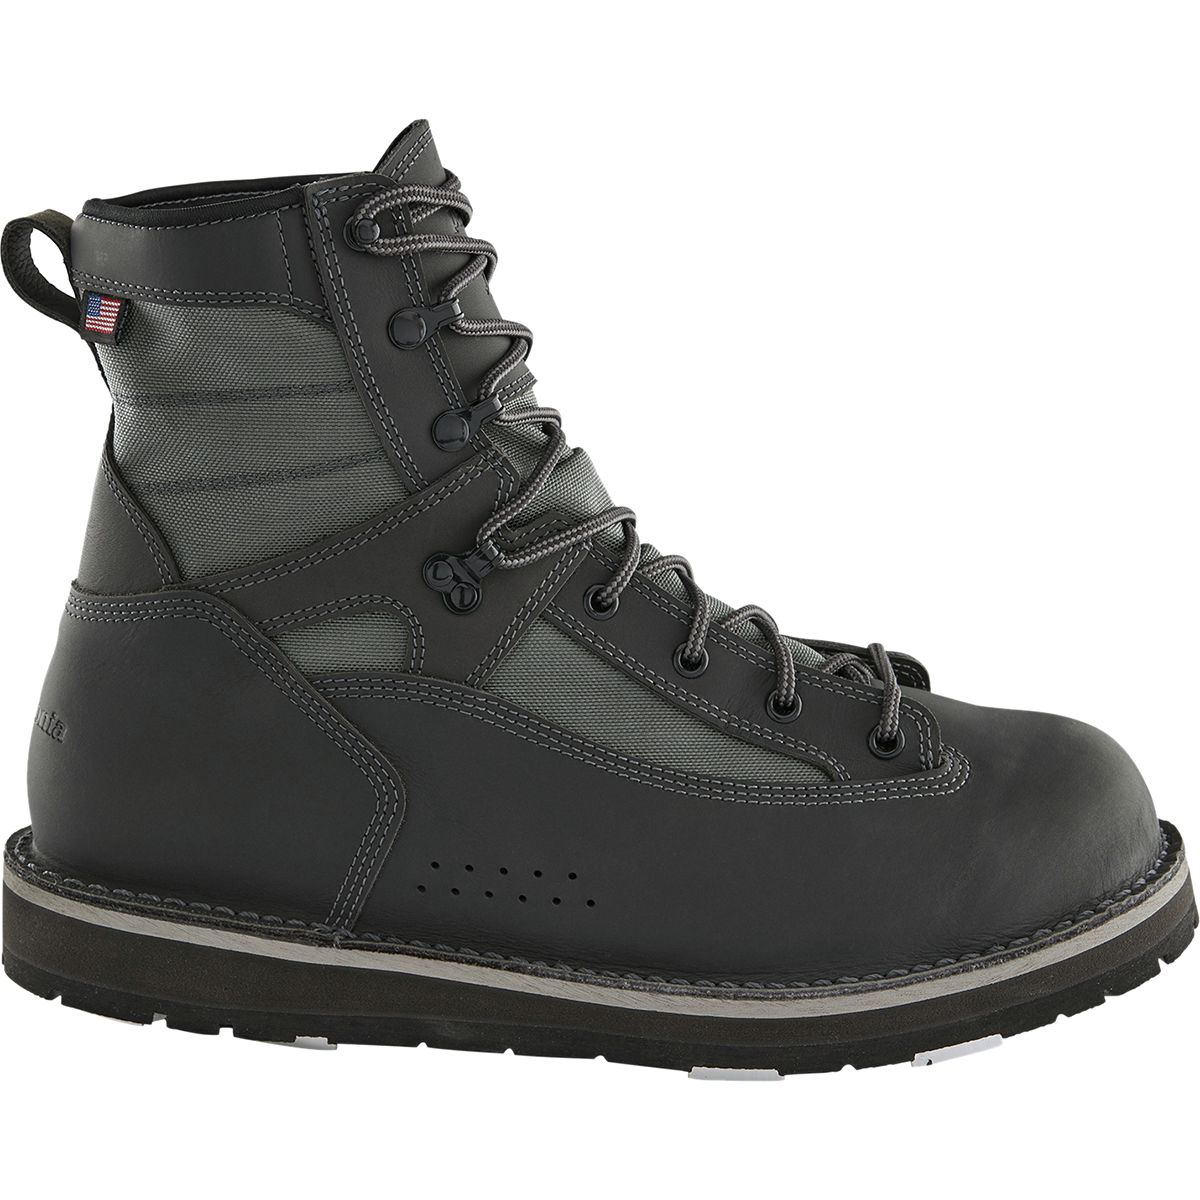 Patagonia Foot Tractor Wading Boots - Aluminum Bar (Built by Danner)